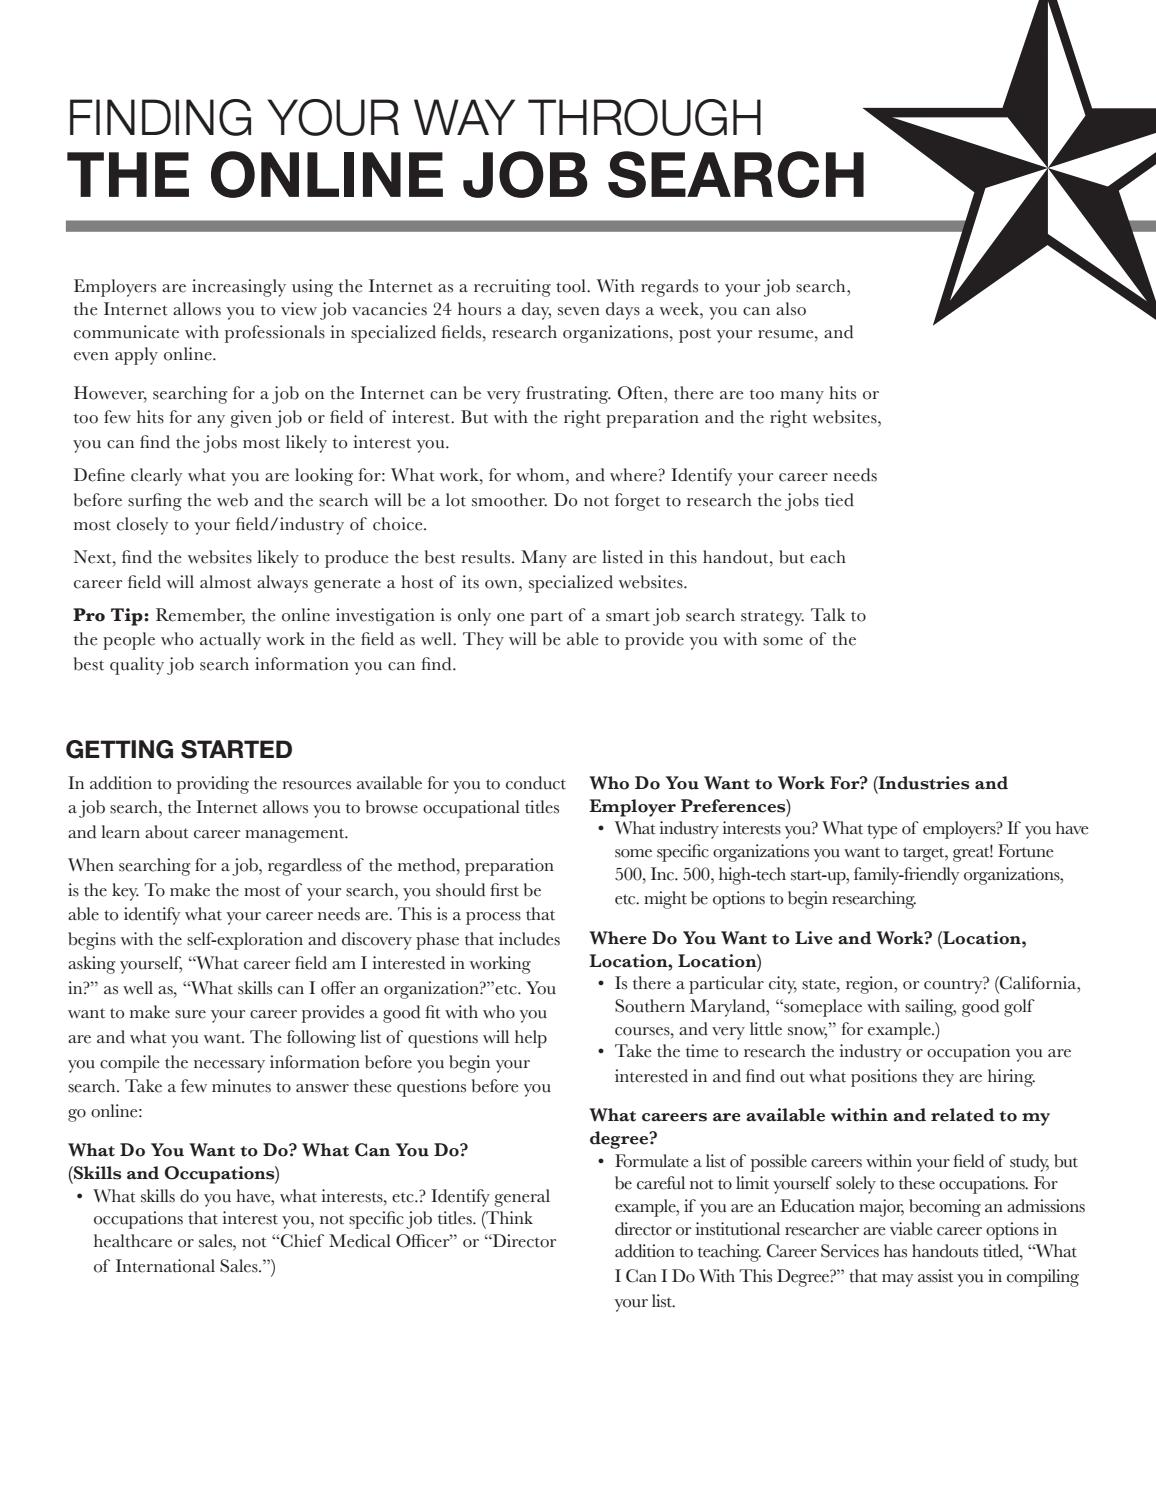 The Online Job Search By Texas State University Career Services   Issuu